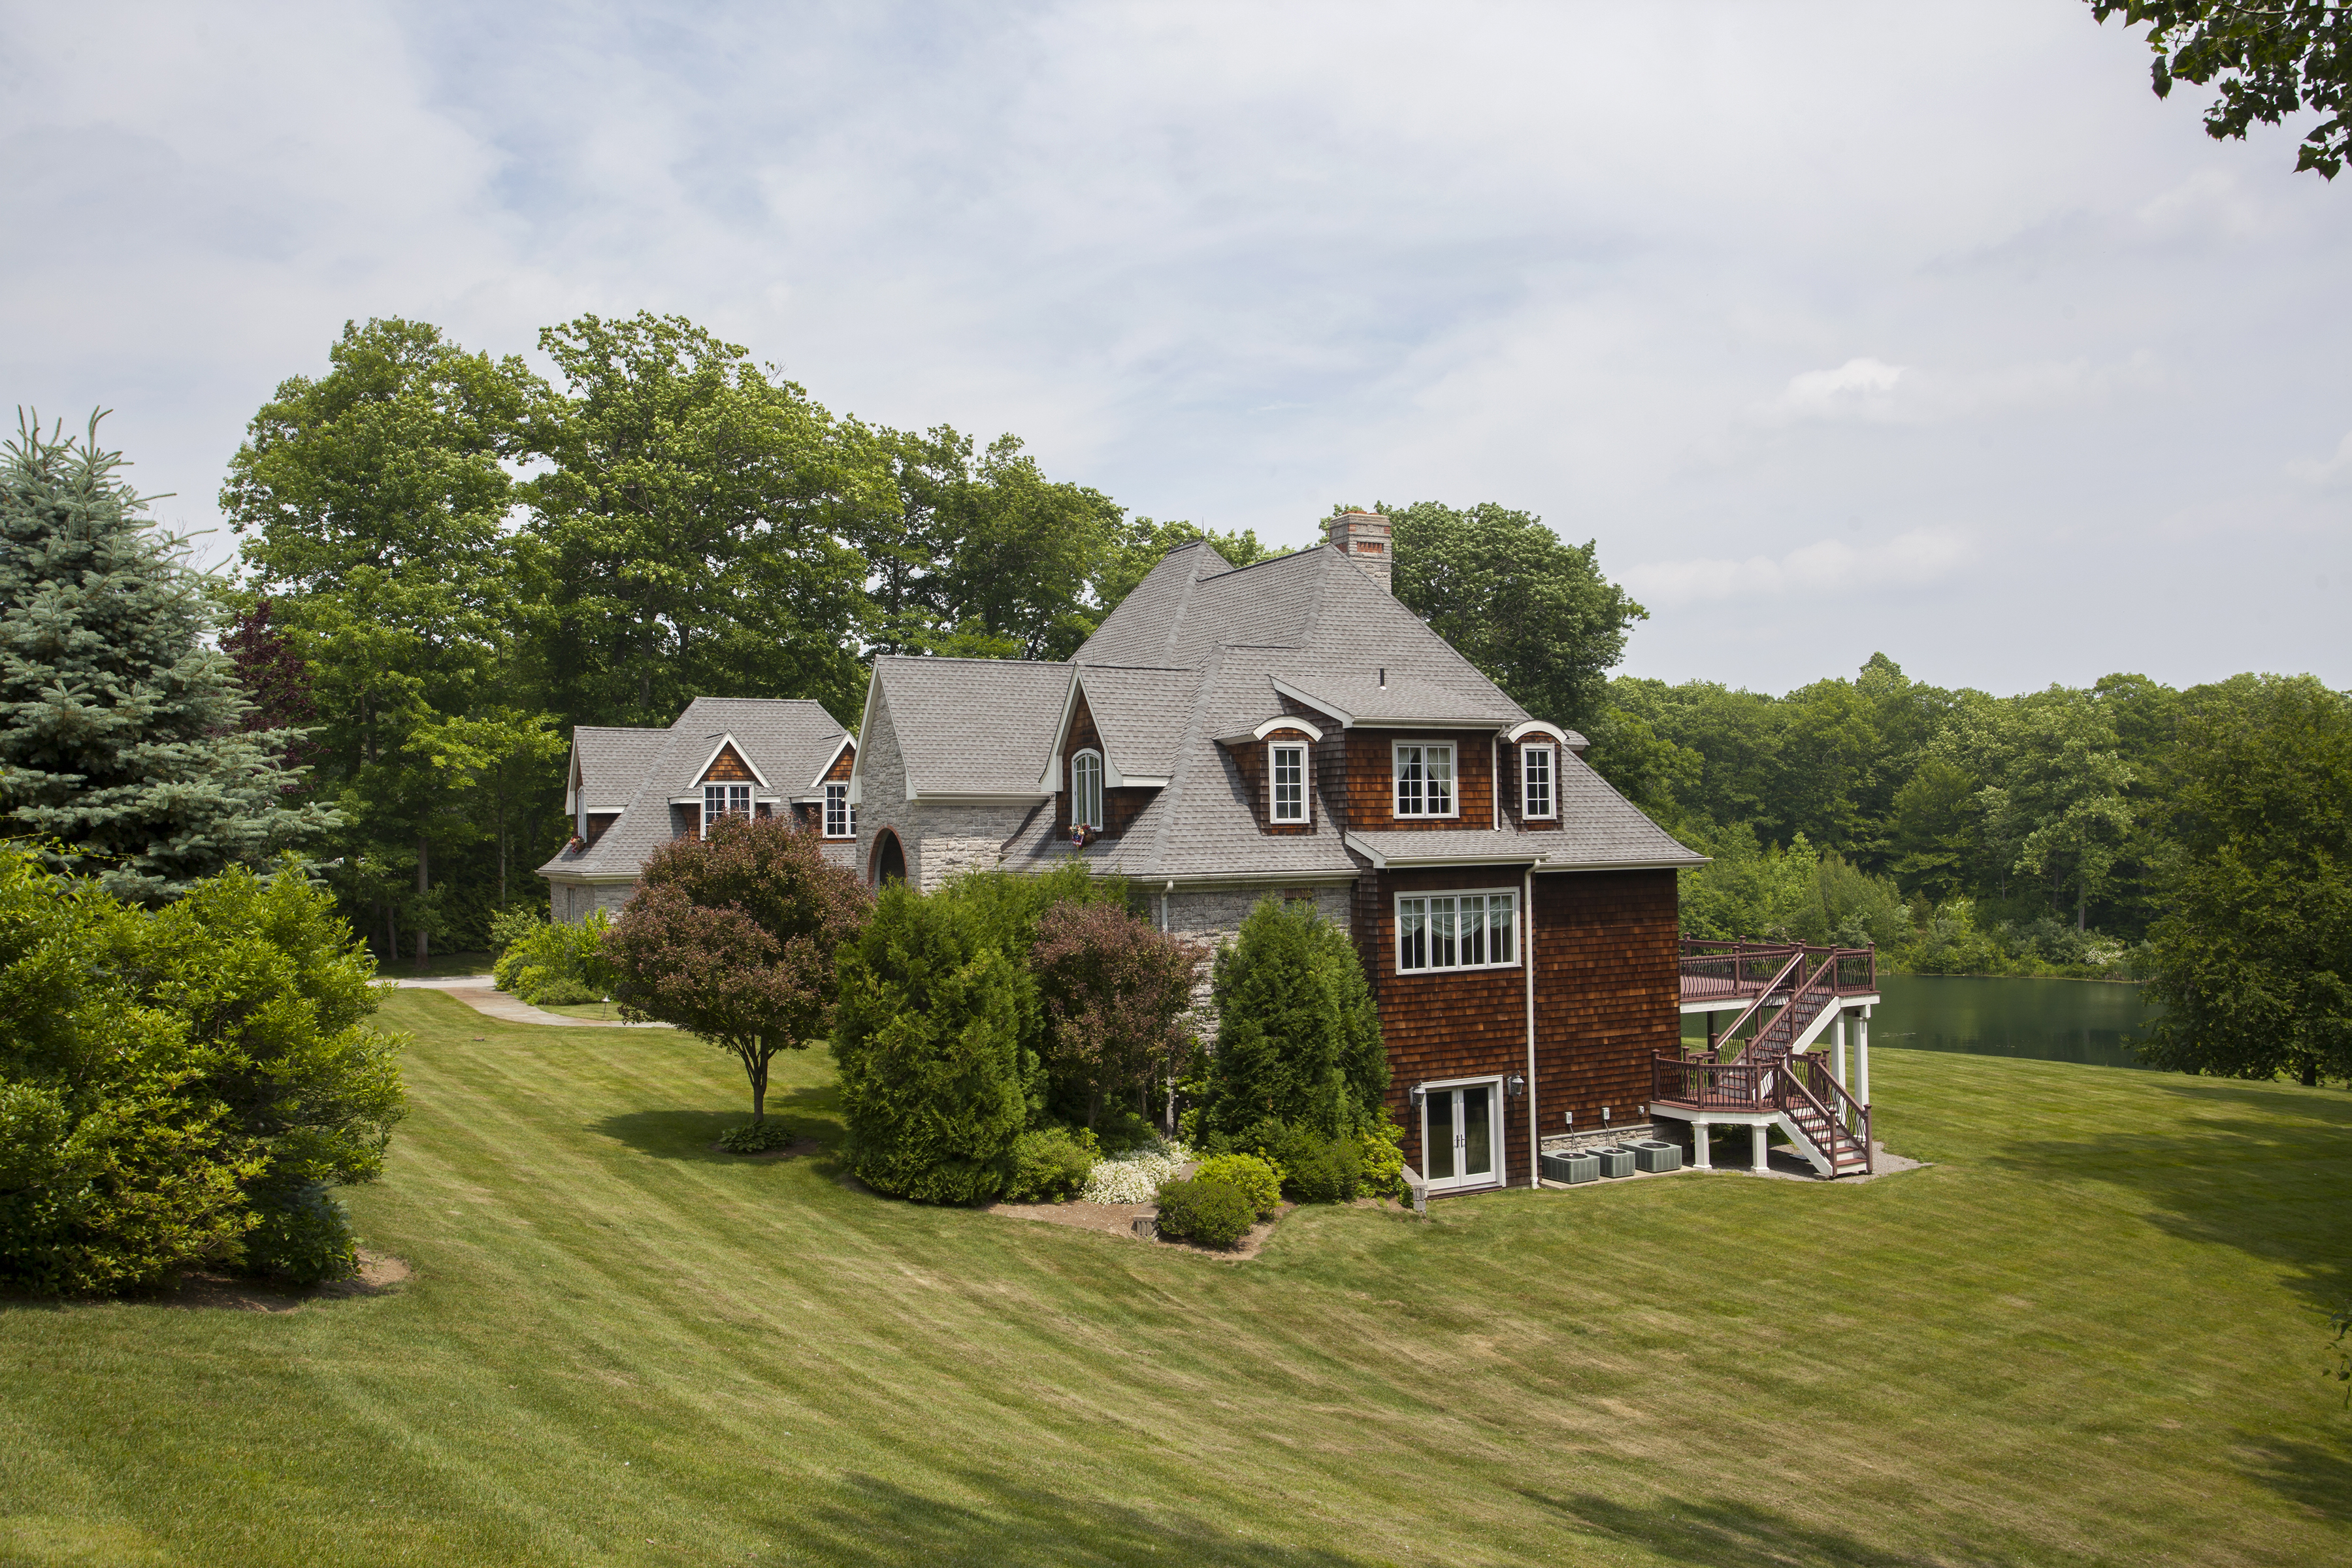 Single Family Home for Sale at Litchfield County Gem 119 Stonybrook Lane Watertown, Connecticut, 06795 United States